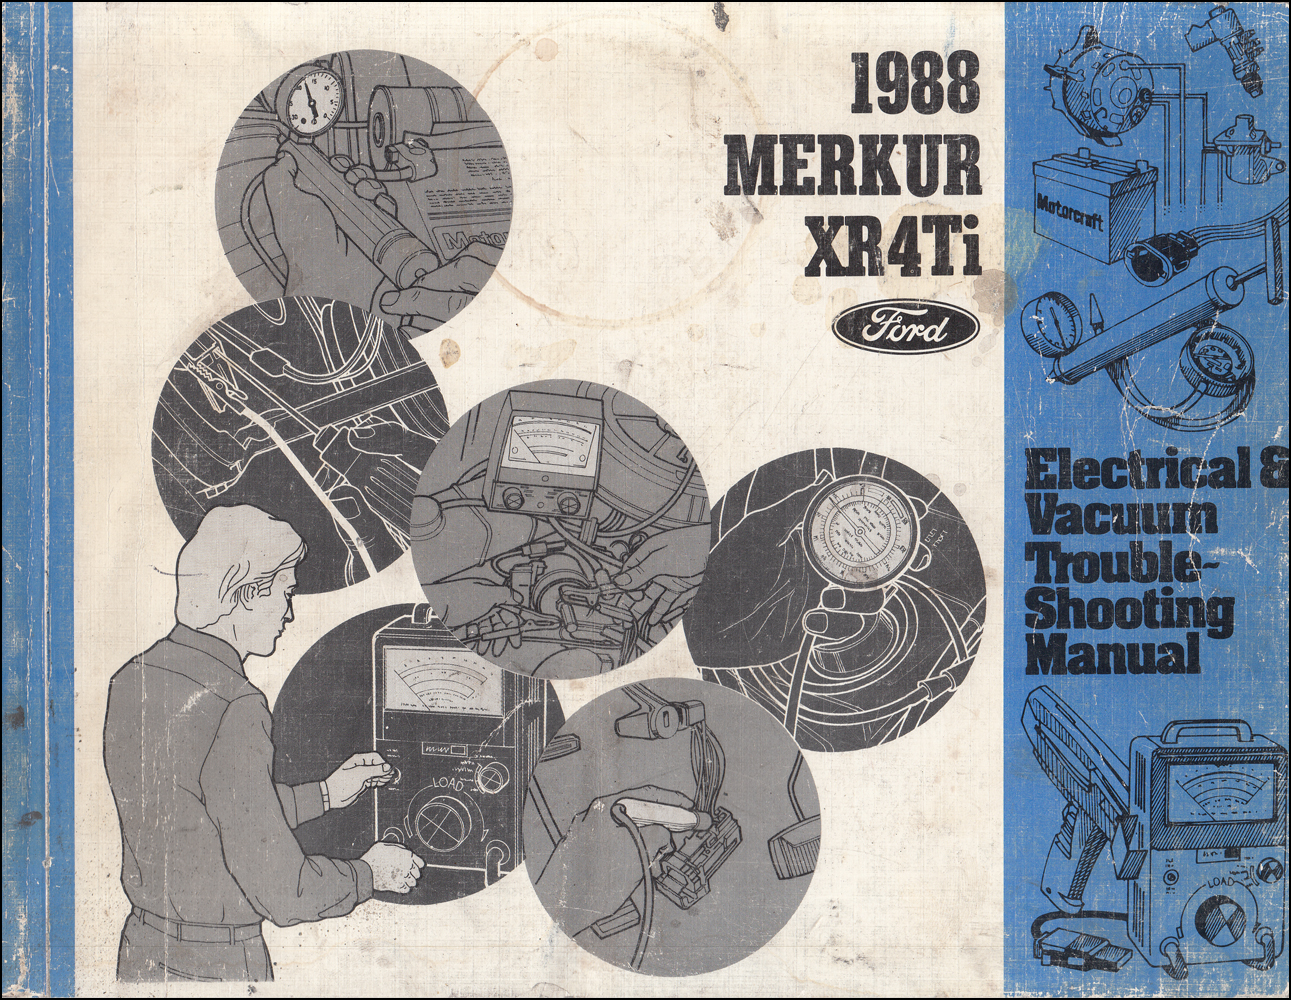 1988 Merkur XR4Ti Electrical & Vacuum Troubleshooting Manual Original